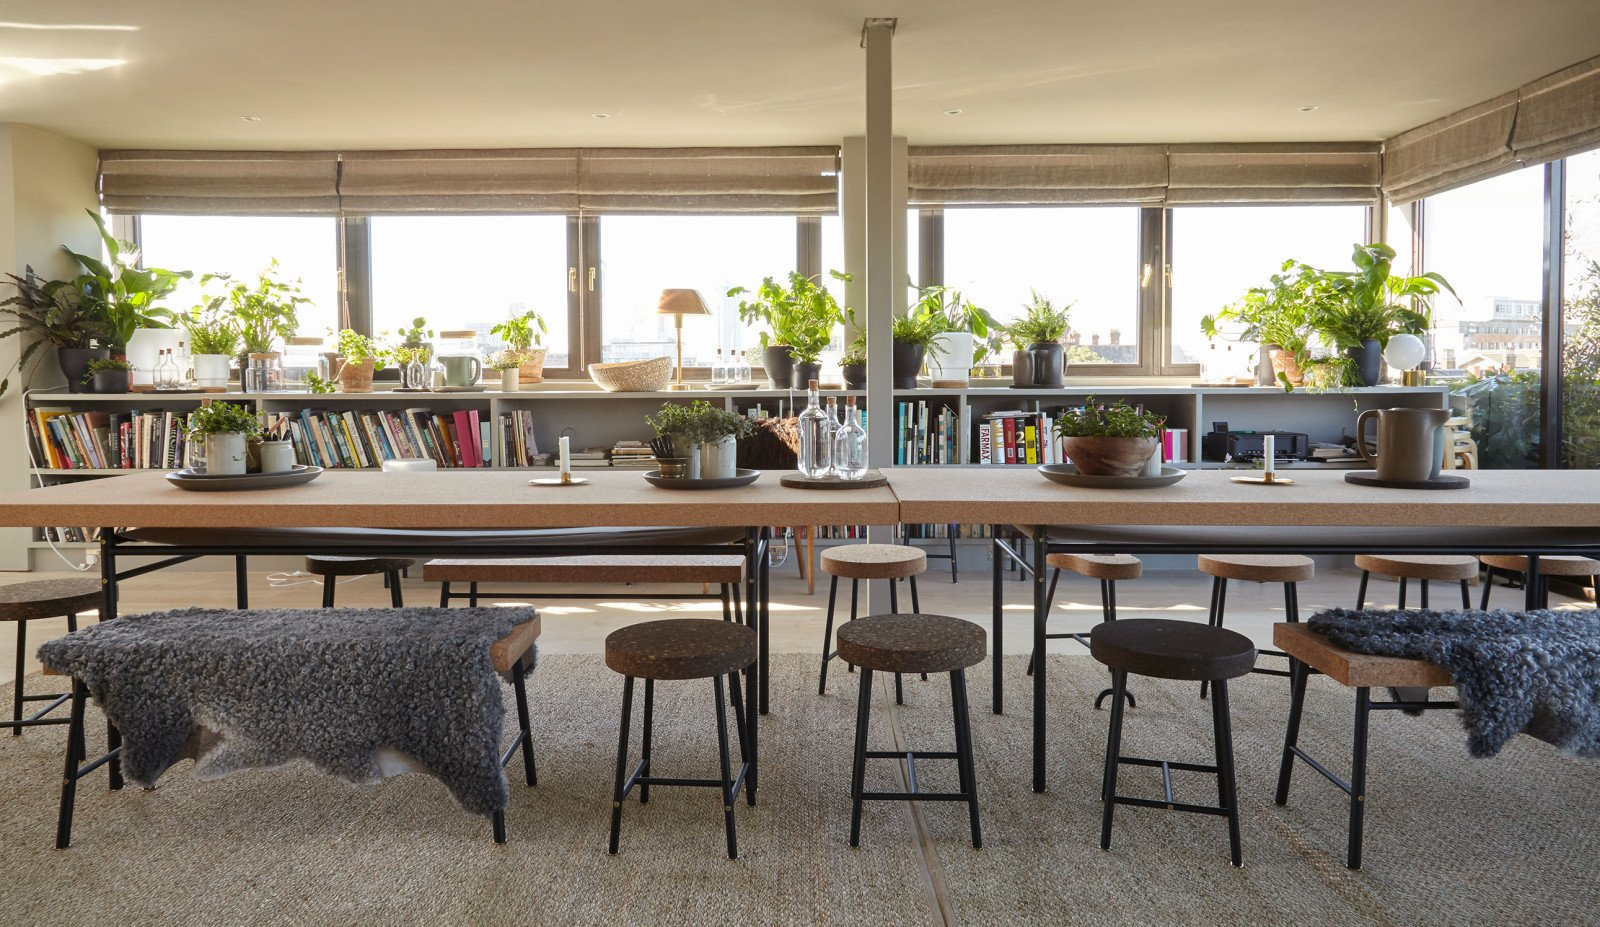 Handcrafted Modern: At Home with Midcentury Designers  Photo 12 of 32 in Interview with Leslie Williamson